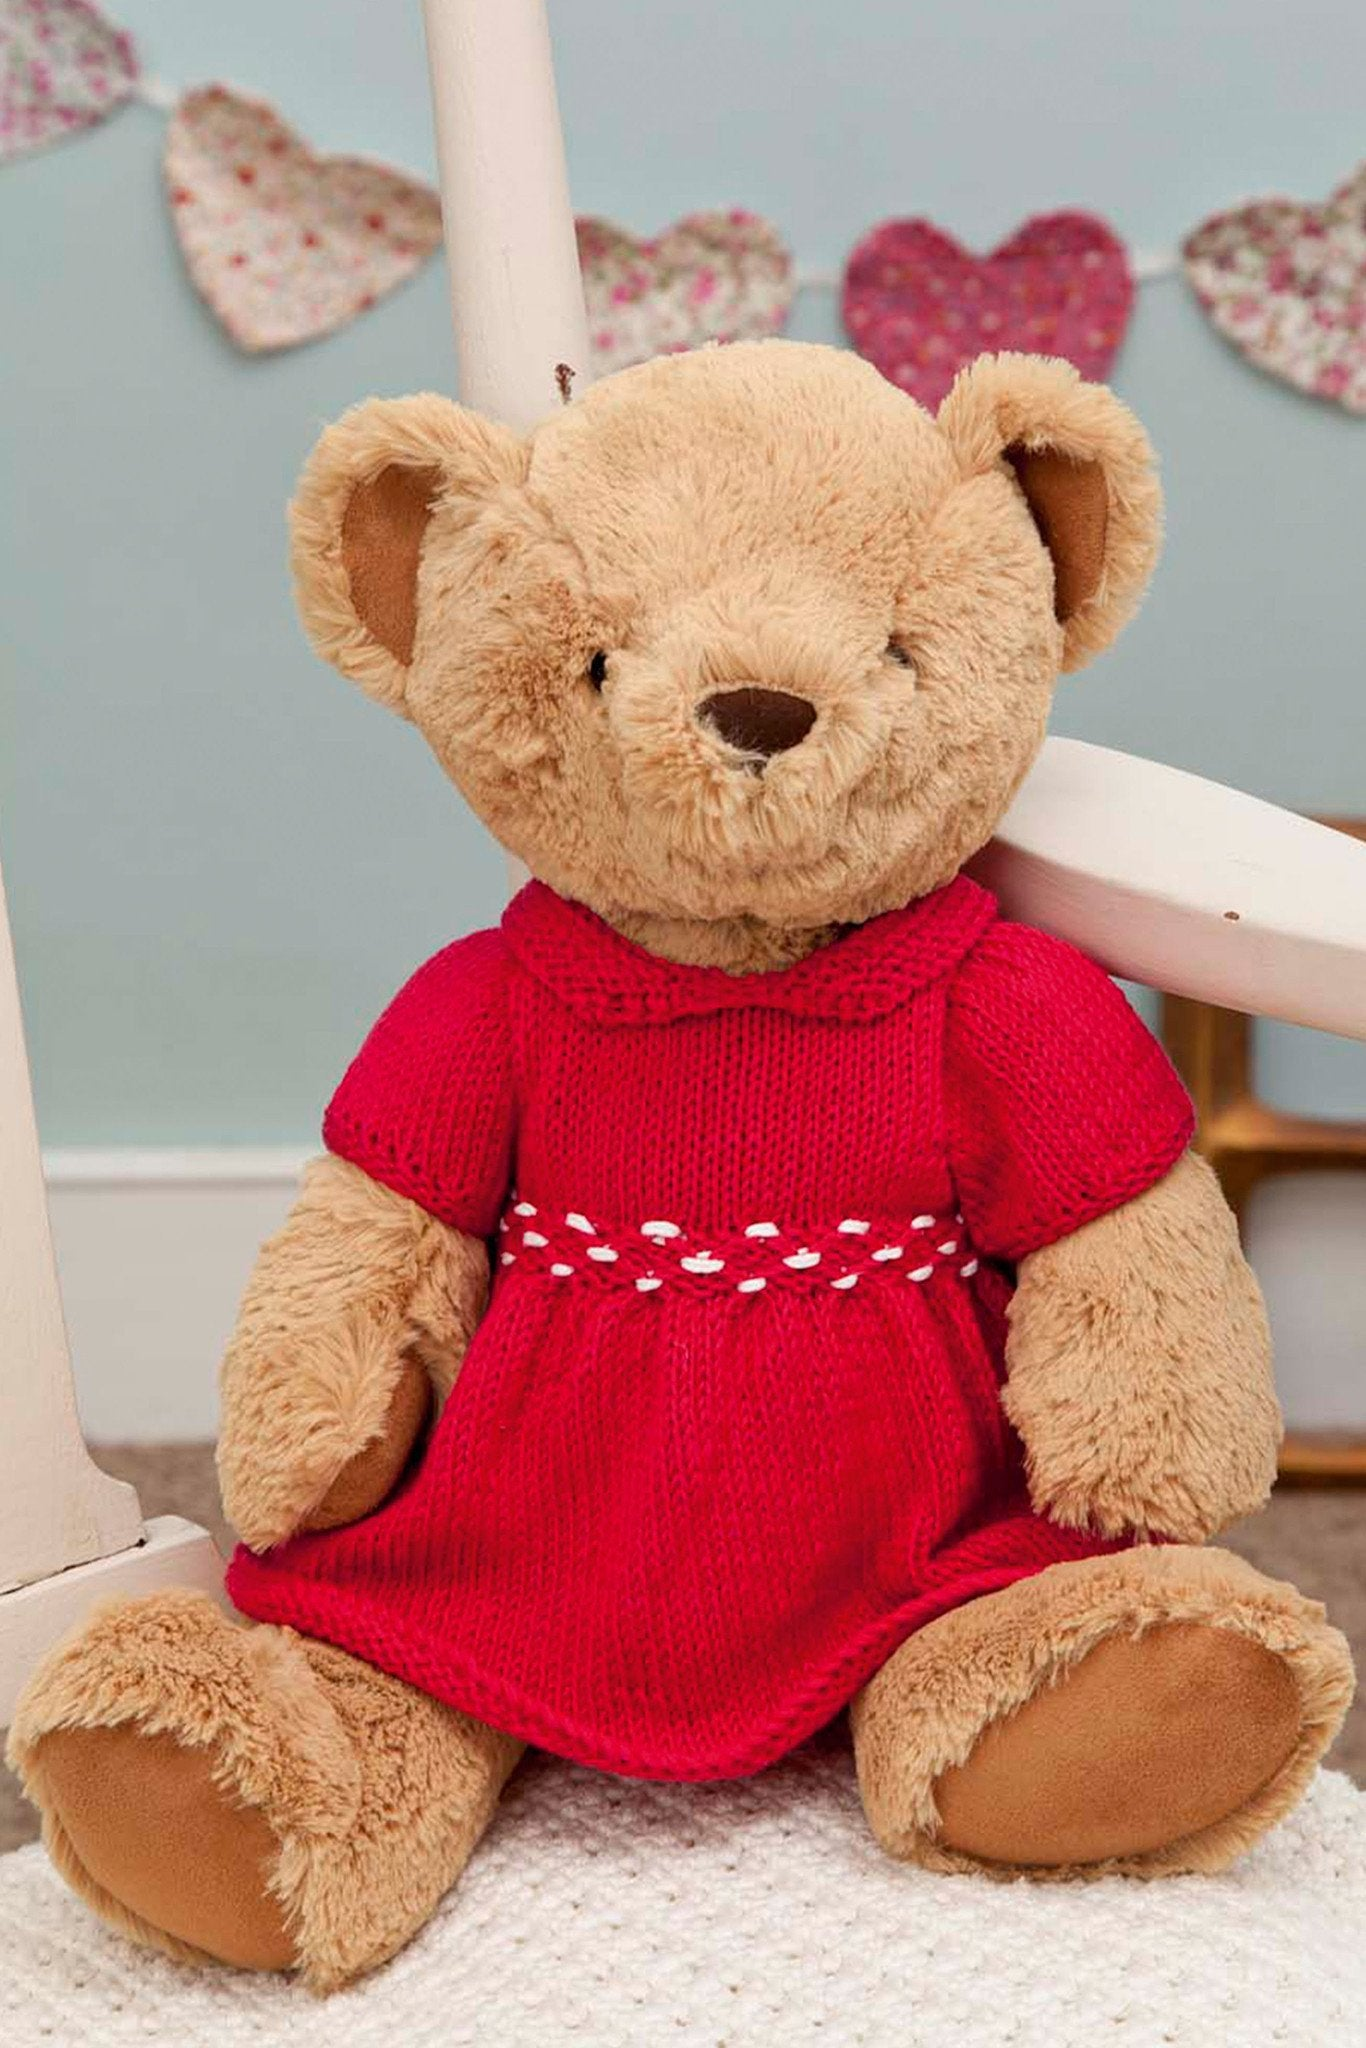 Vintage Teddy Clothes Dress And Pants Knitting Patterns – The ...